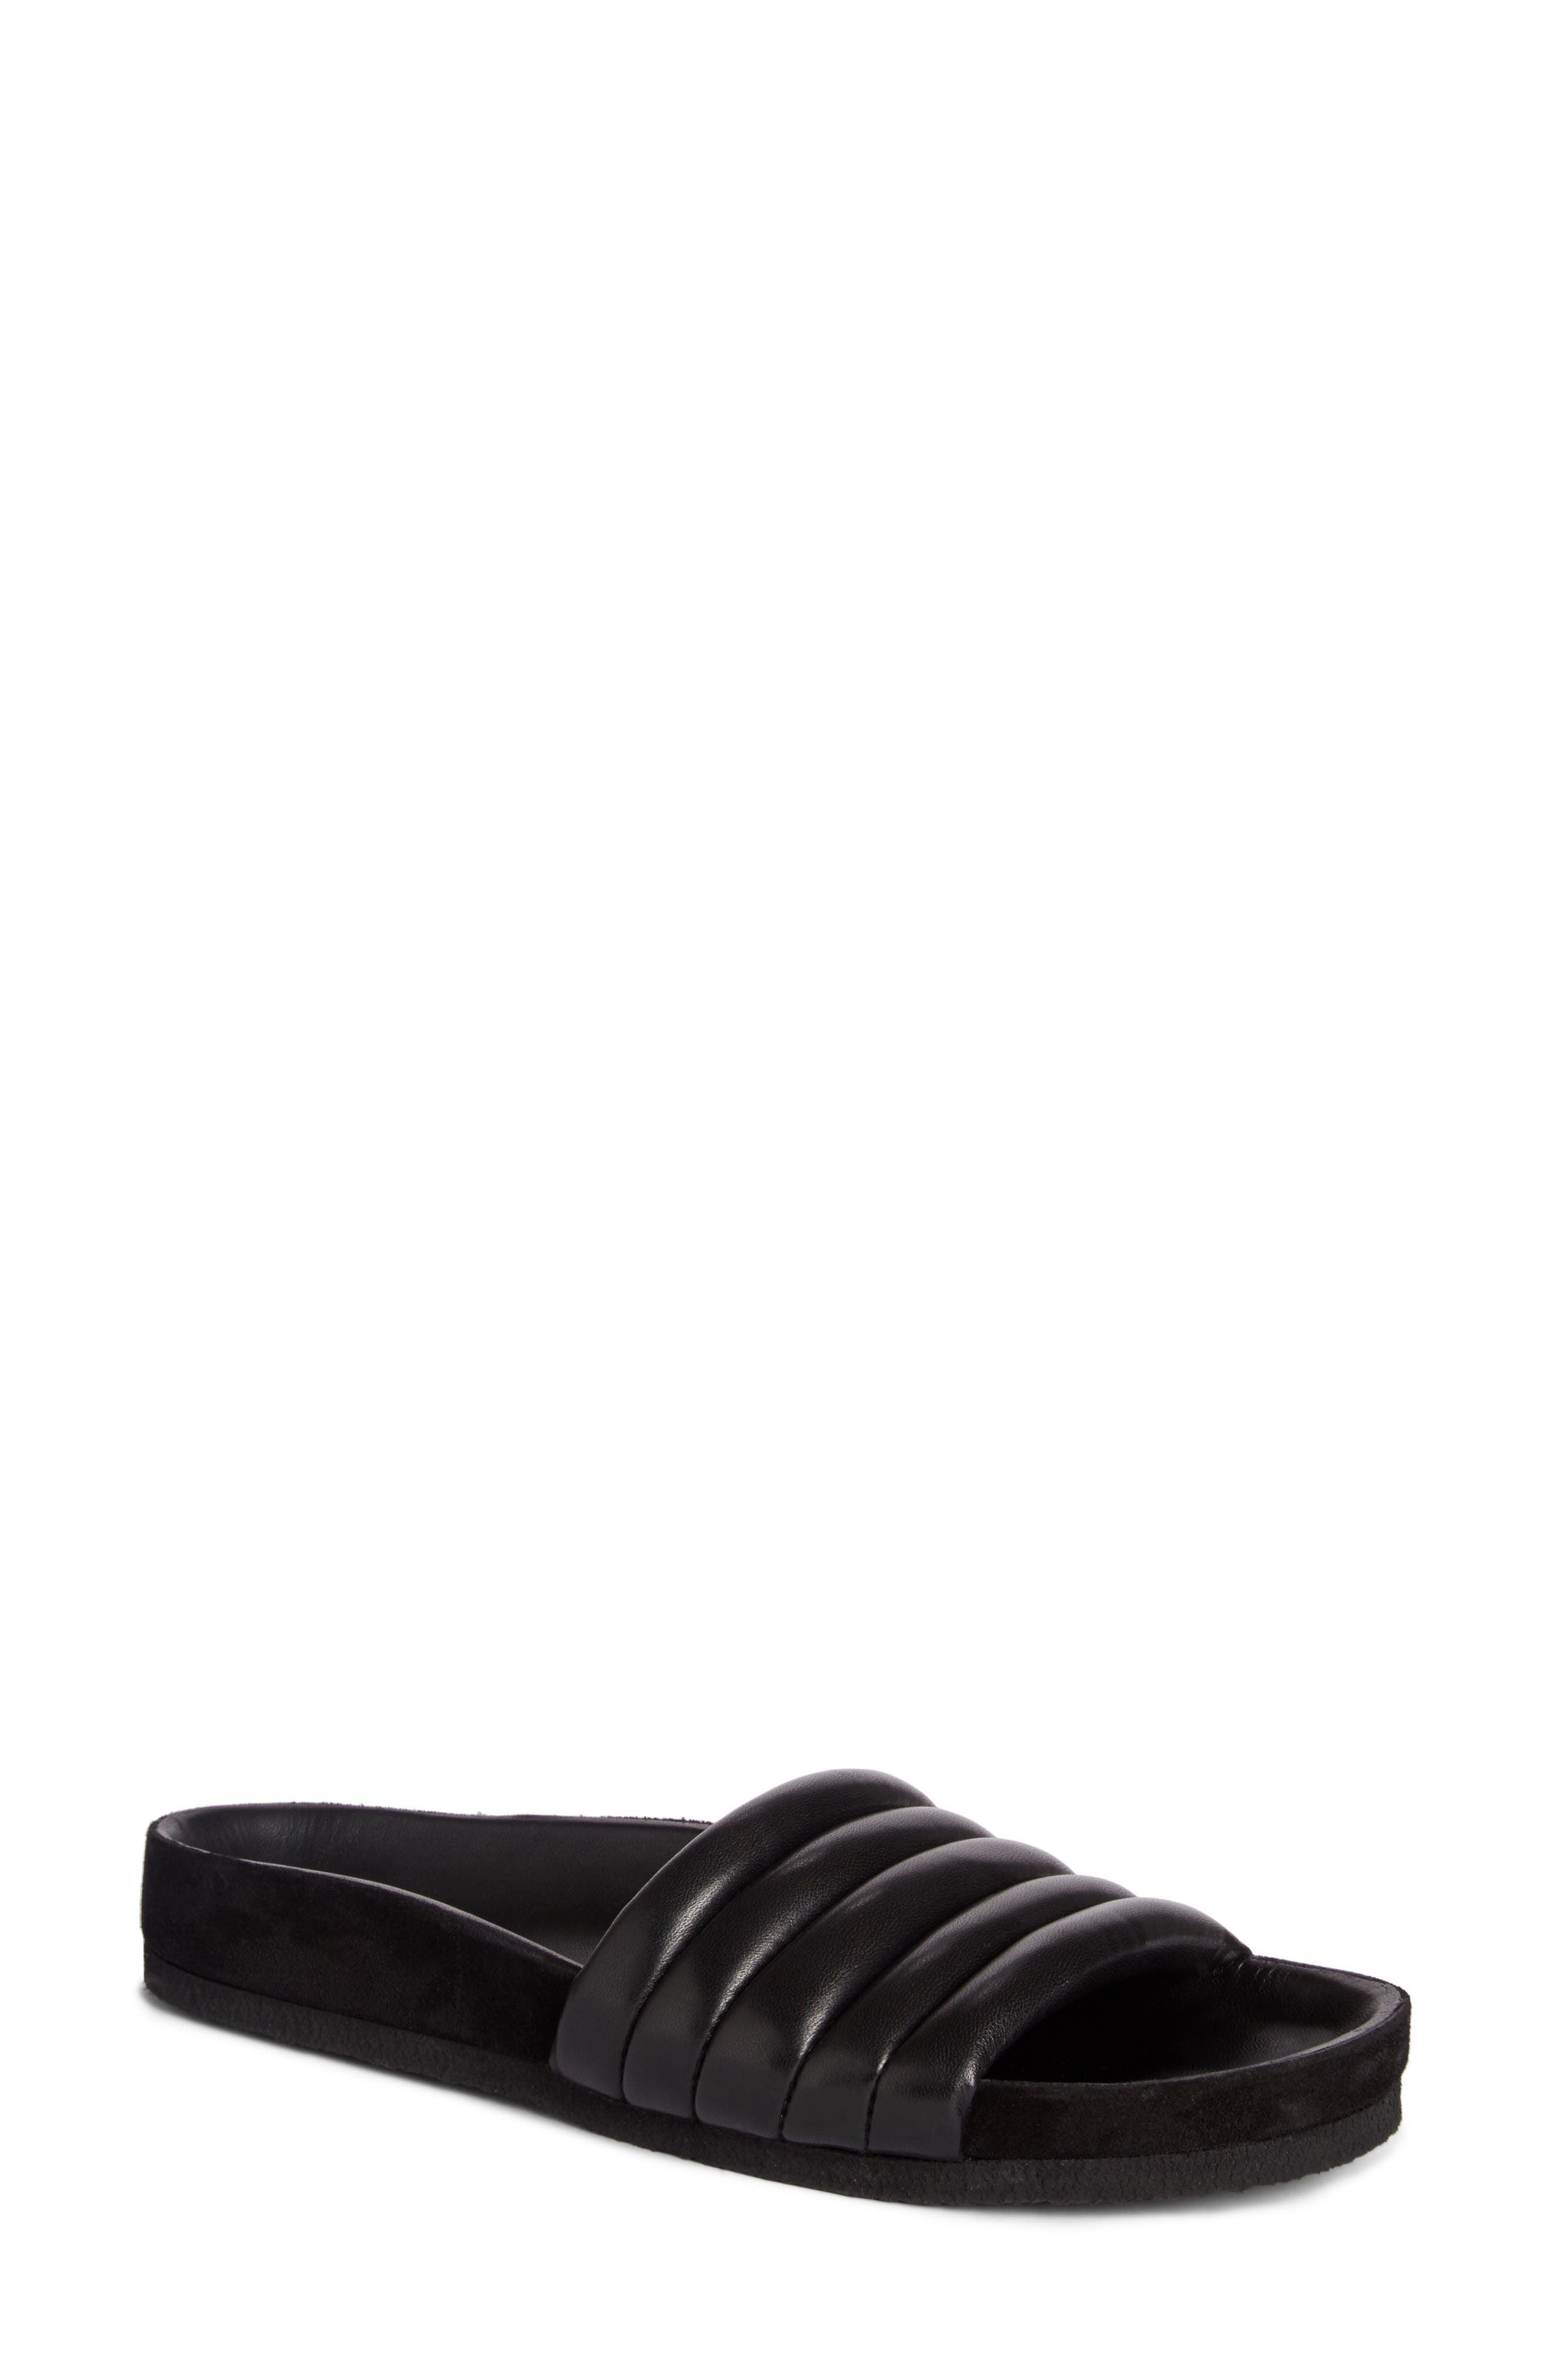 Hellea Slide Sandal,                         Main,                         color, BLACK